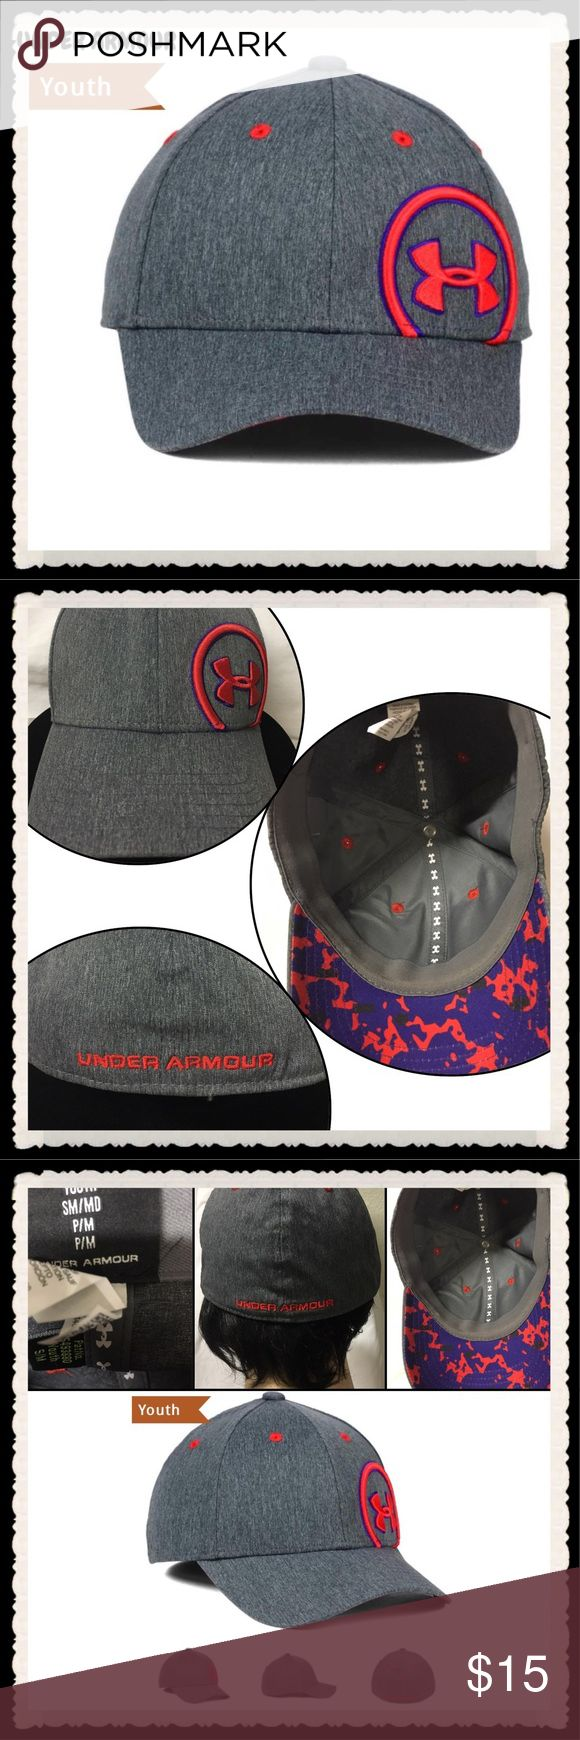 🆕 UNDER ARMOUR Storm Gray fitted baseball cap, UNDER ARMOUR Storm grey ladies/girls baseball Cap with pink/blue logo, youth size Sm/Med but fits other sizes too. Please refer to size chart. My oldest Son & I both wear this Sz so it actually depends on the size of your head. NWOT excellent new condition! MSRP $35 depends on where you would purchase new. Reasonable offers welcome. ⚾️ Under Armour Accessories Hats